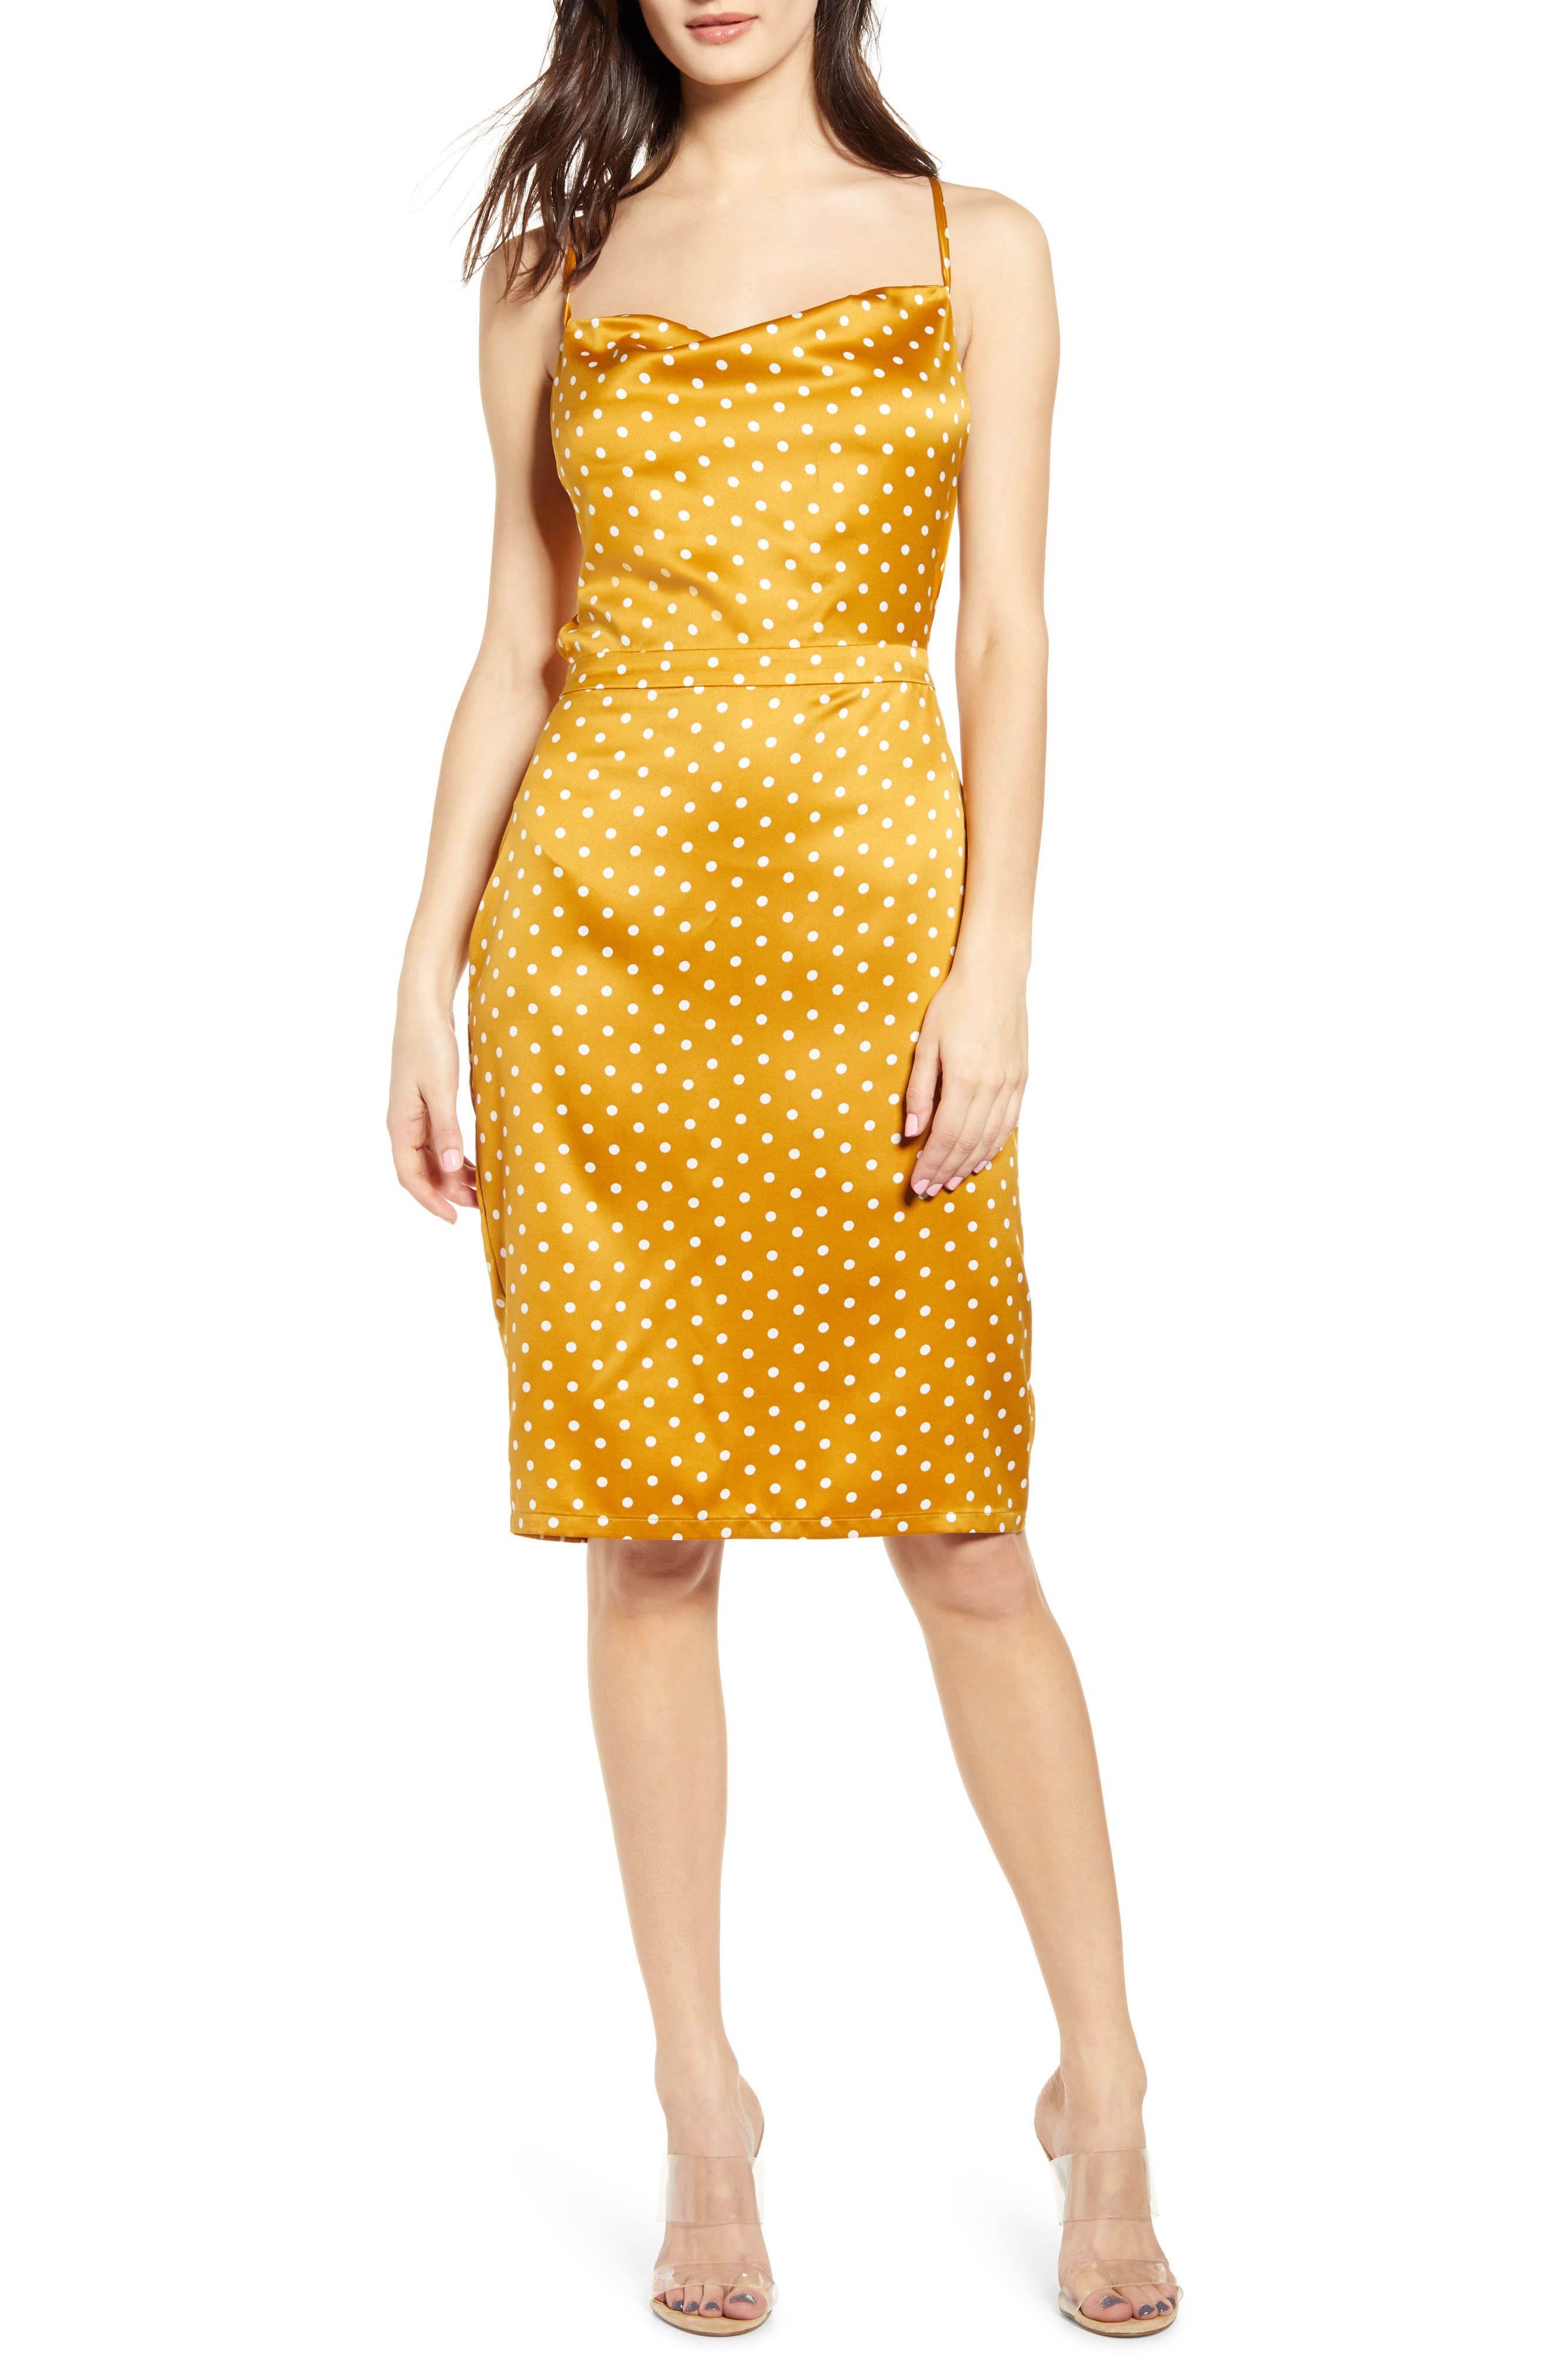 J.o.a. Polka Dot Cowl Open Back Satin Dress, Yellow